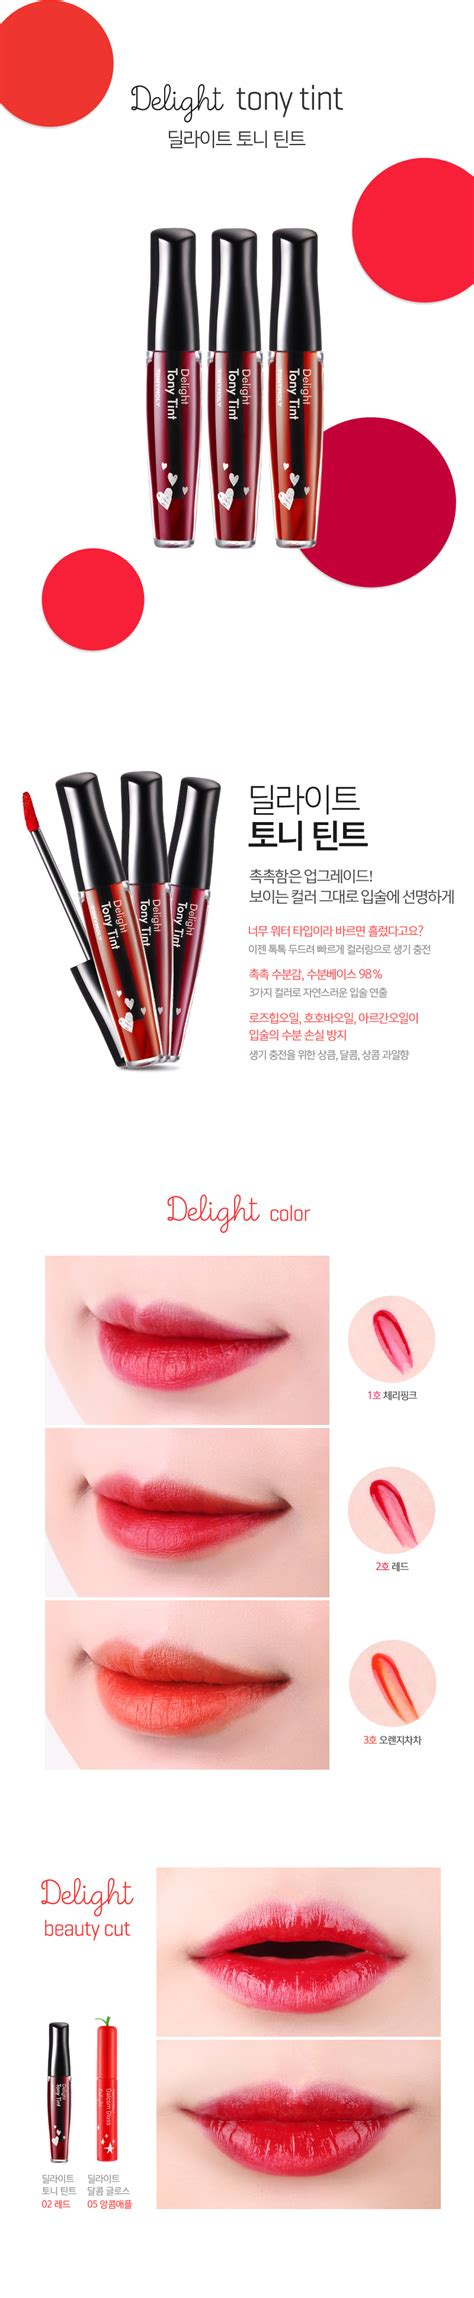 Lipstik Delight Tony Tint tonymoly delight tony tint 9g 3 colors one lip